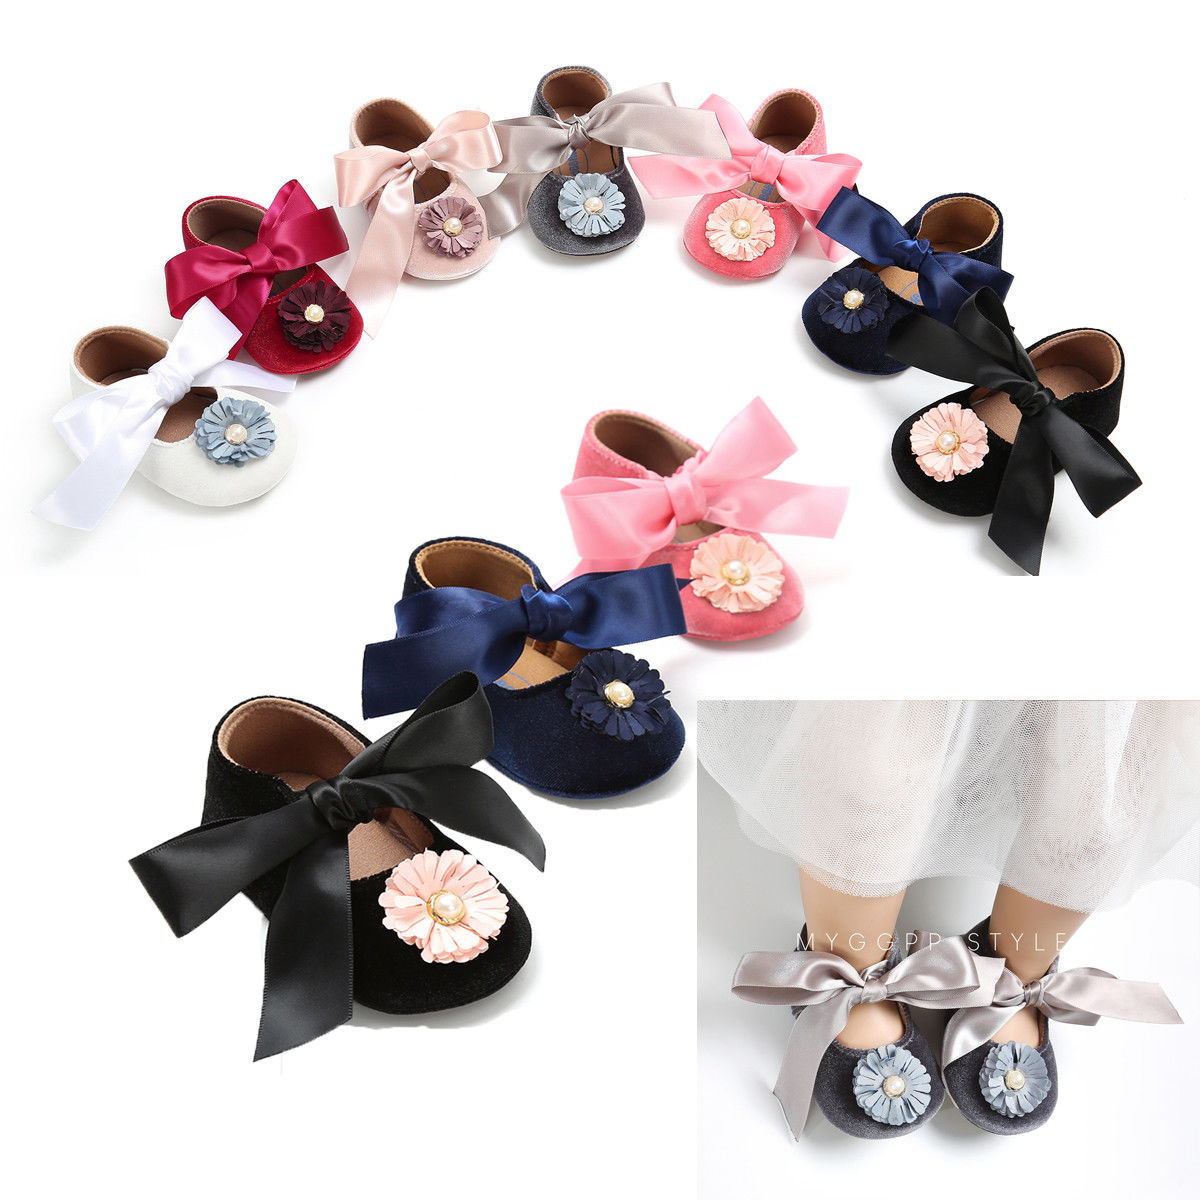 Stylish Summer Toddler Baby Shoes Newborn Girls Soft Soled Casual Cotton Princess Striped Crib Shoes Prewalker One Pairs Floral